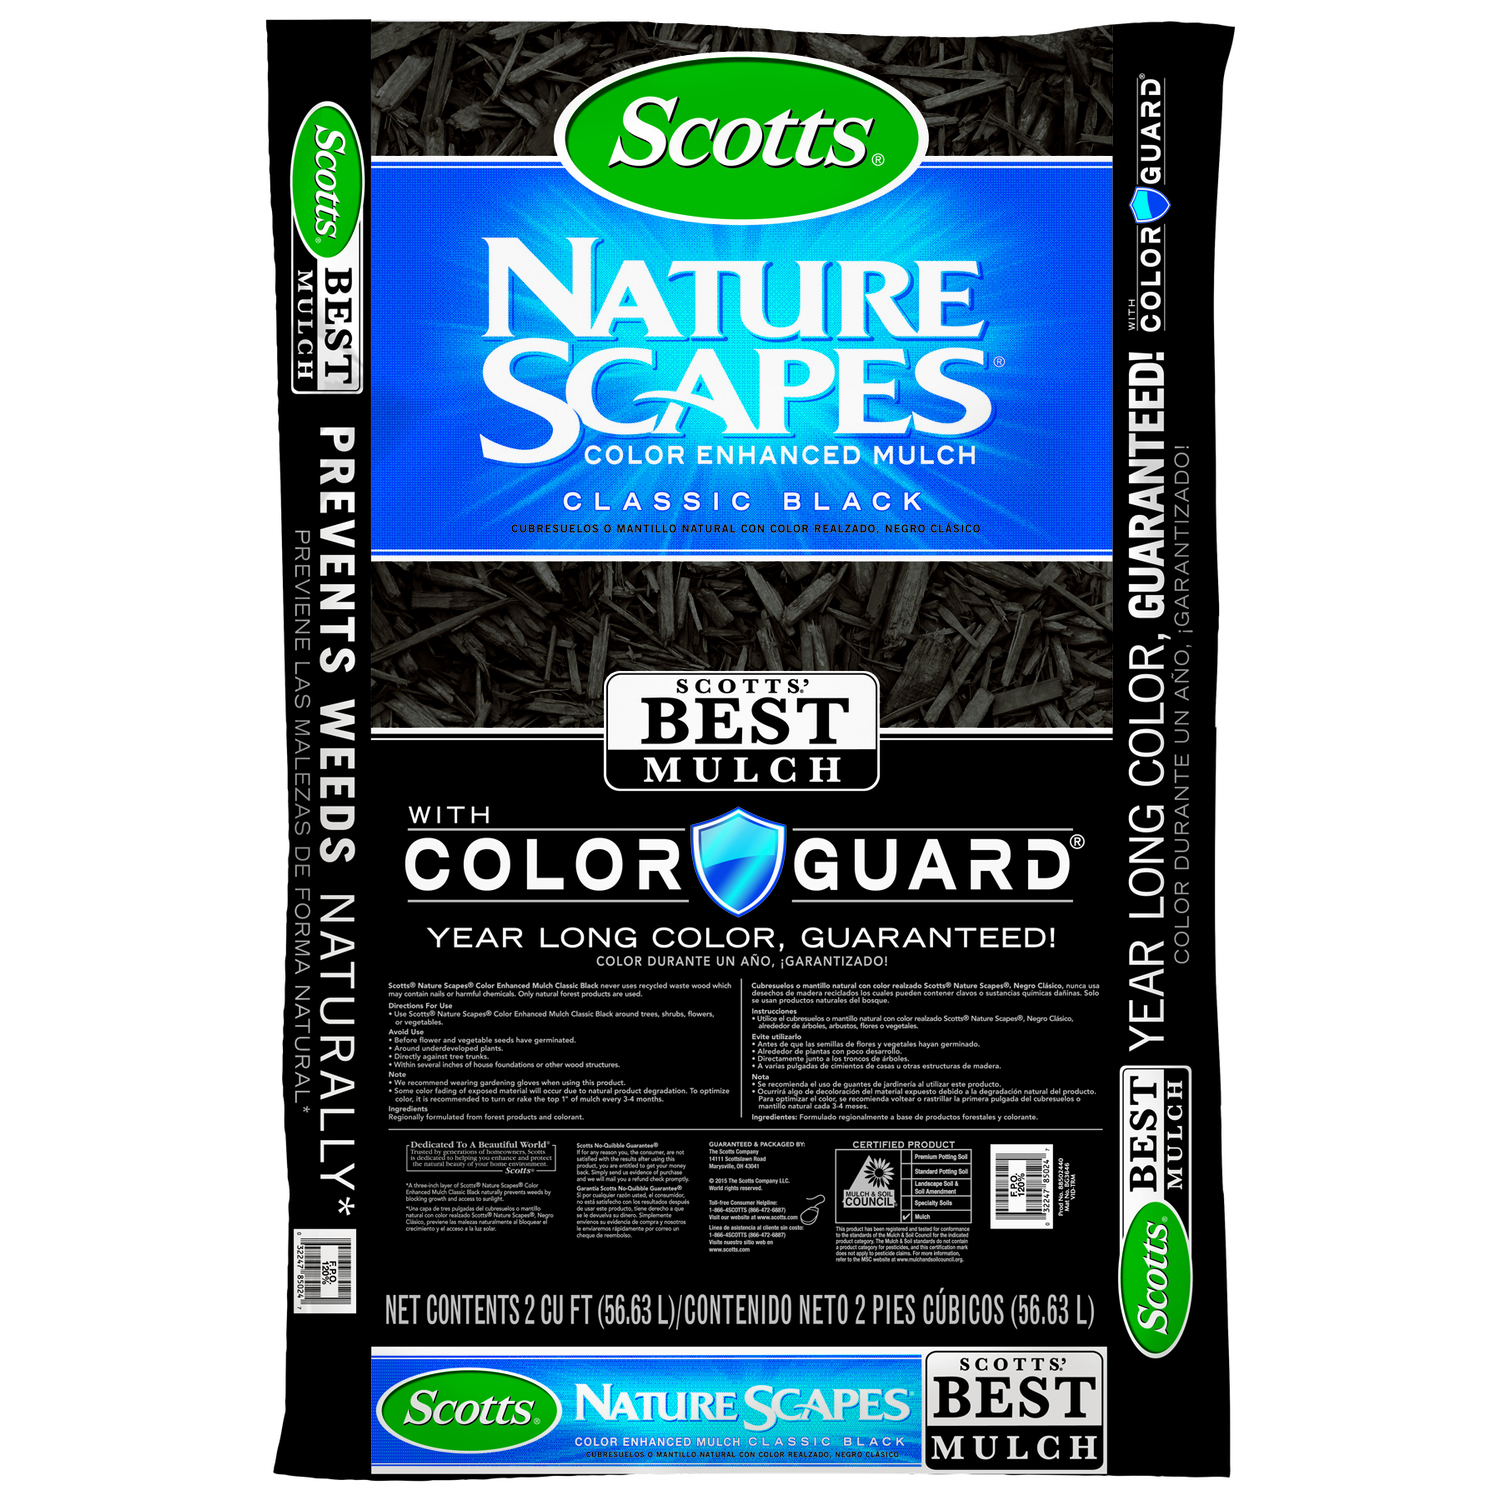 Black Bark Mulch Scotts Nature Scapes Classic Black Bark Color Enhanced Mulch 2 Cu